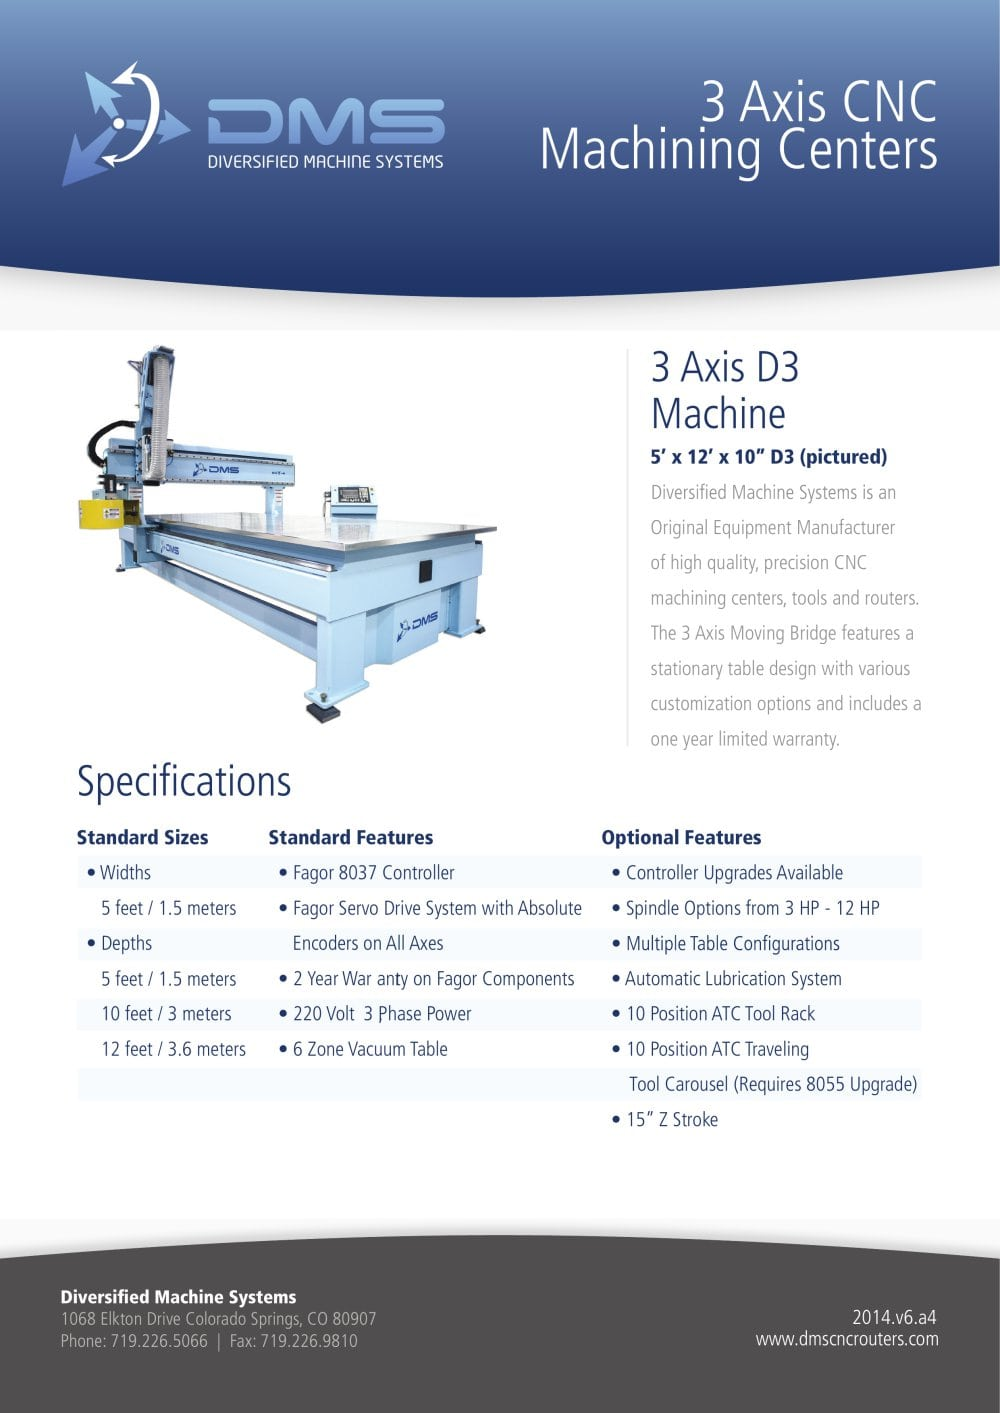 3 Axis Cnc Machining Centers 1 2 Pages